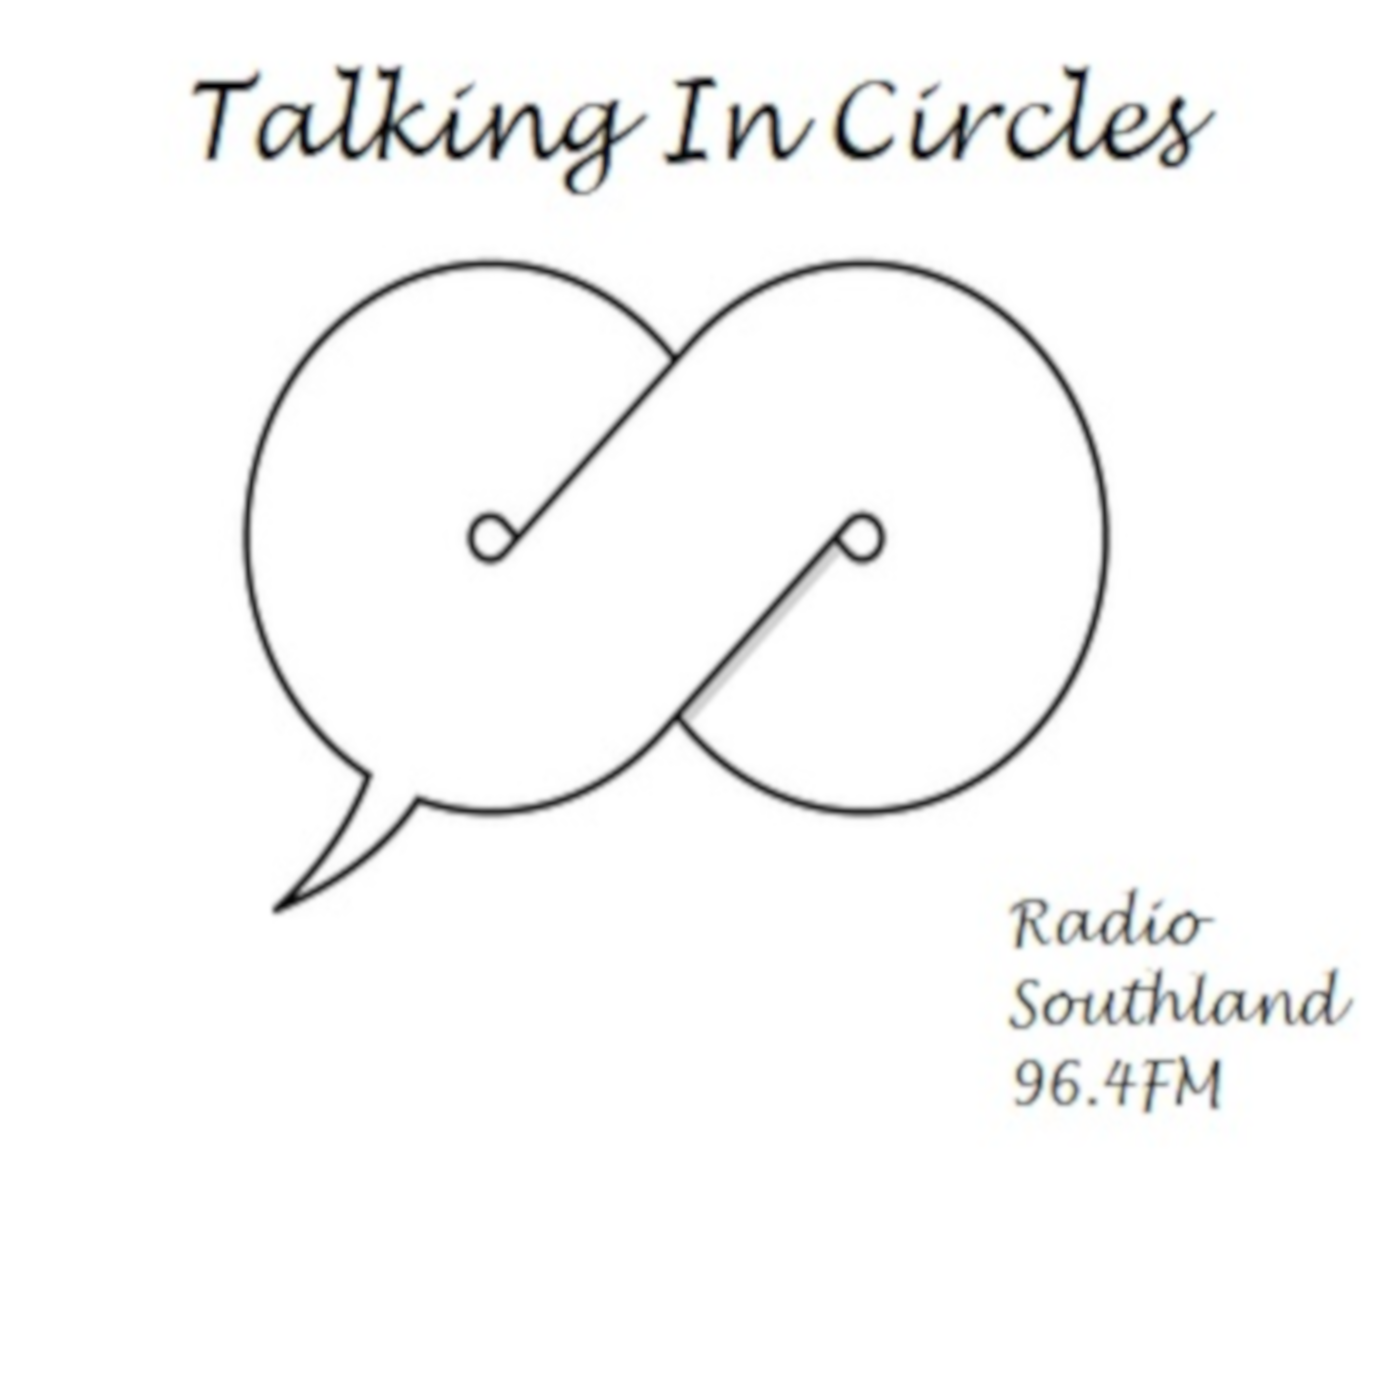 https://static.accessradio.org/StationFolder/radiosouthland/Images/Talking.png